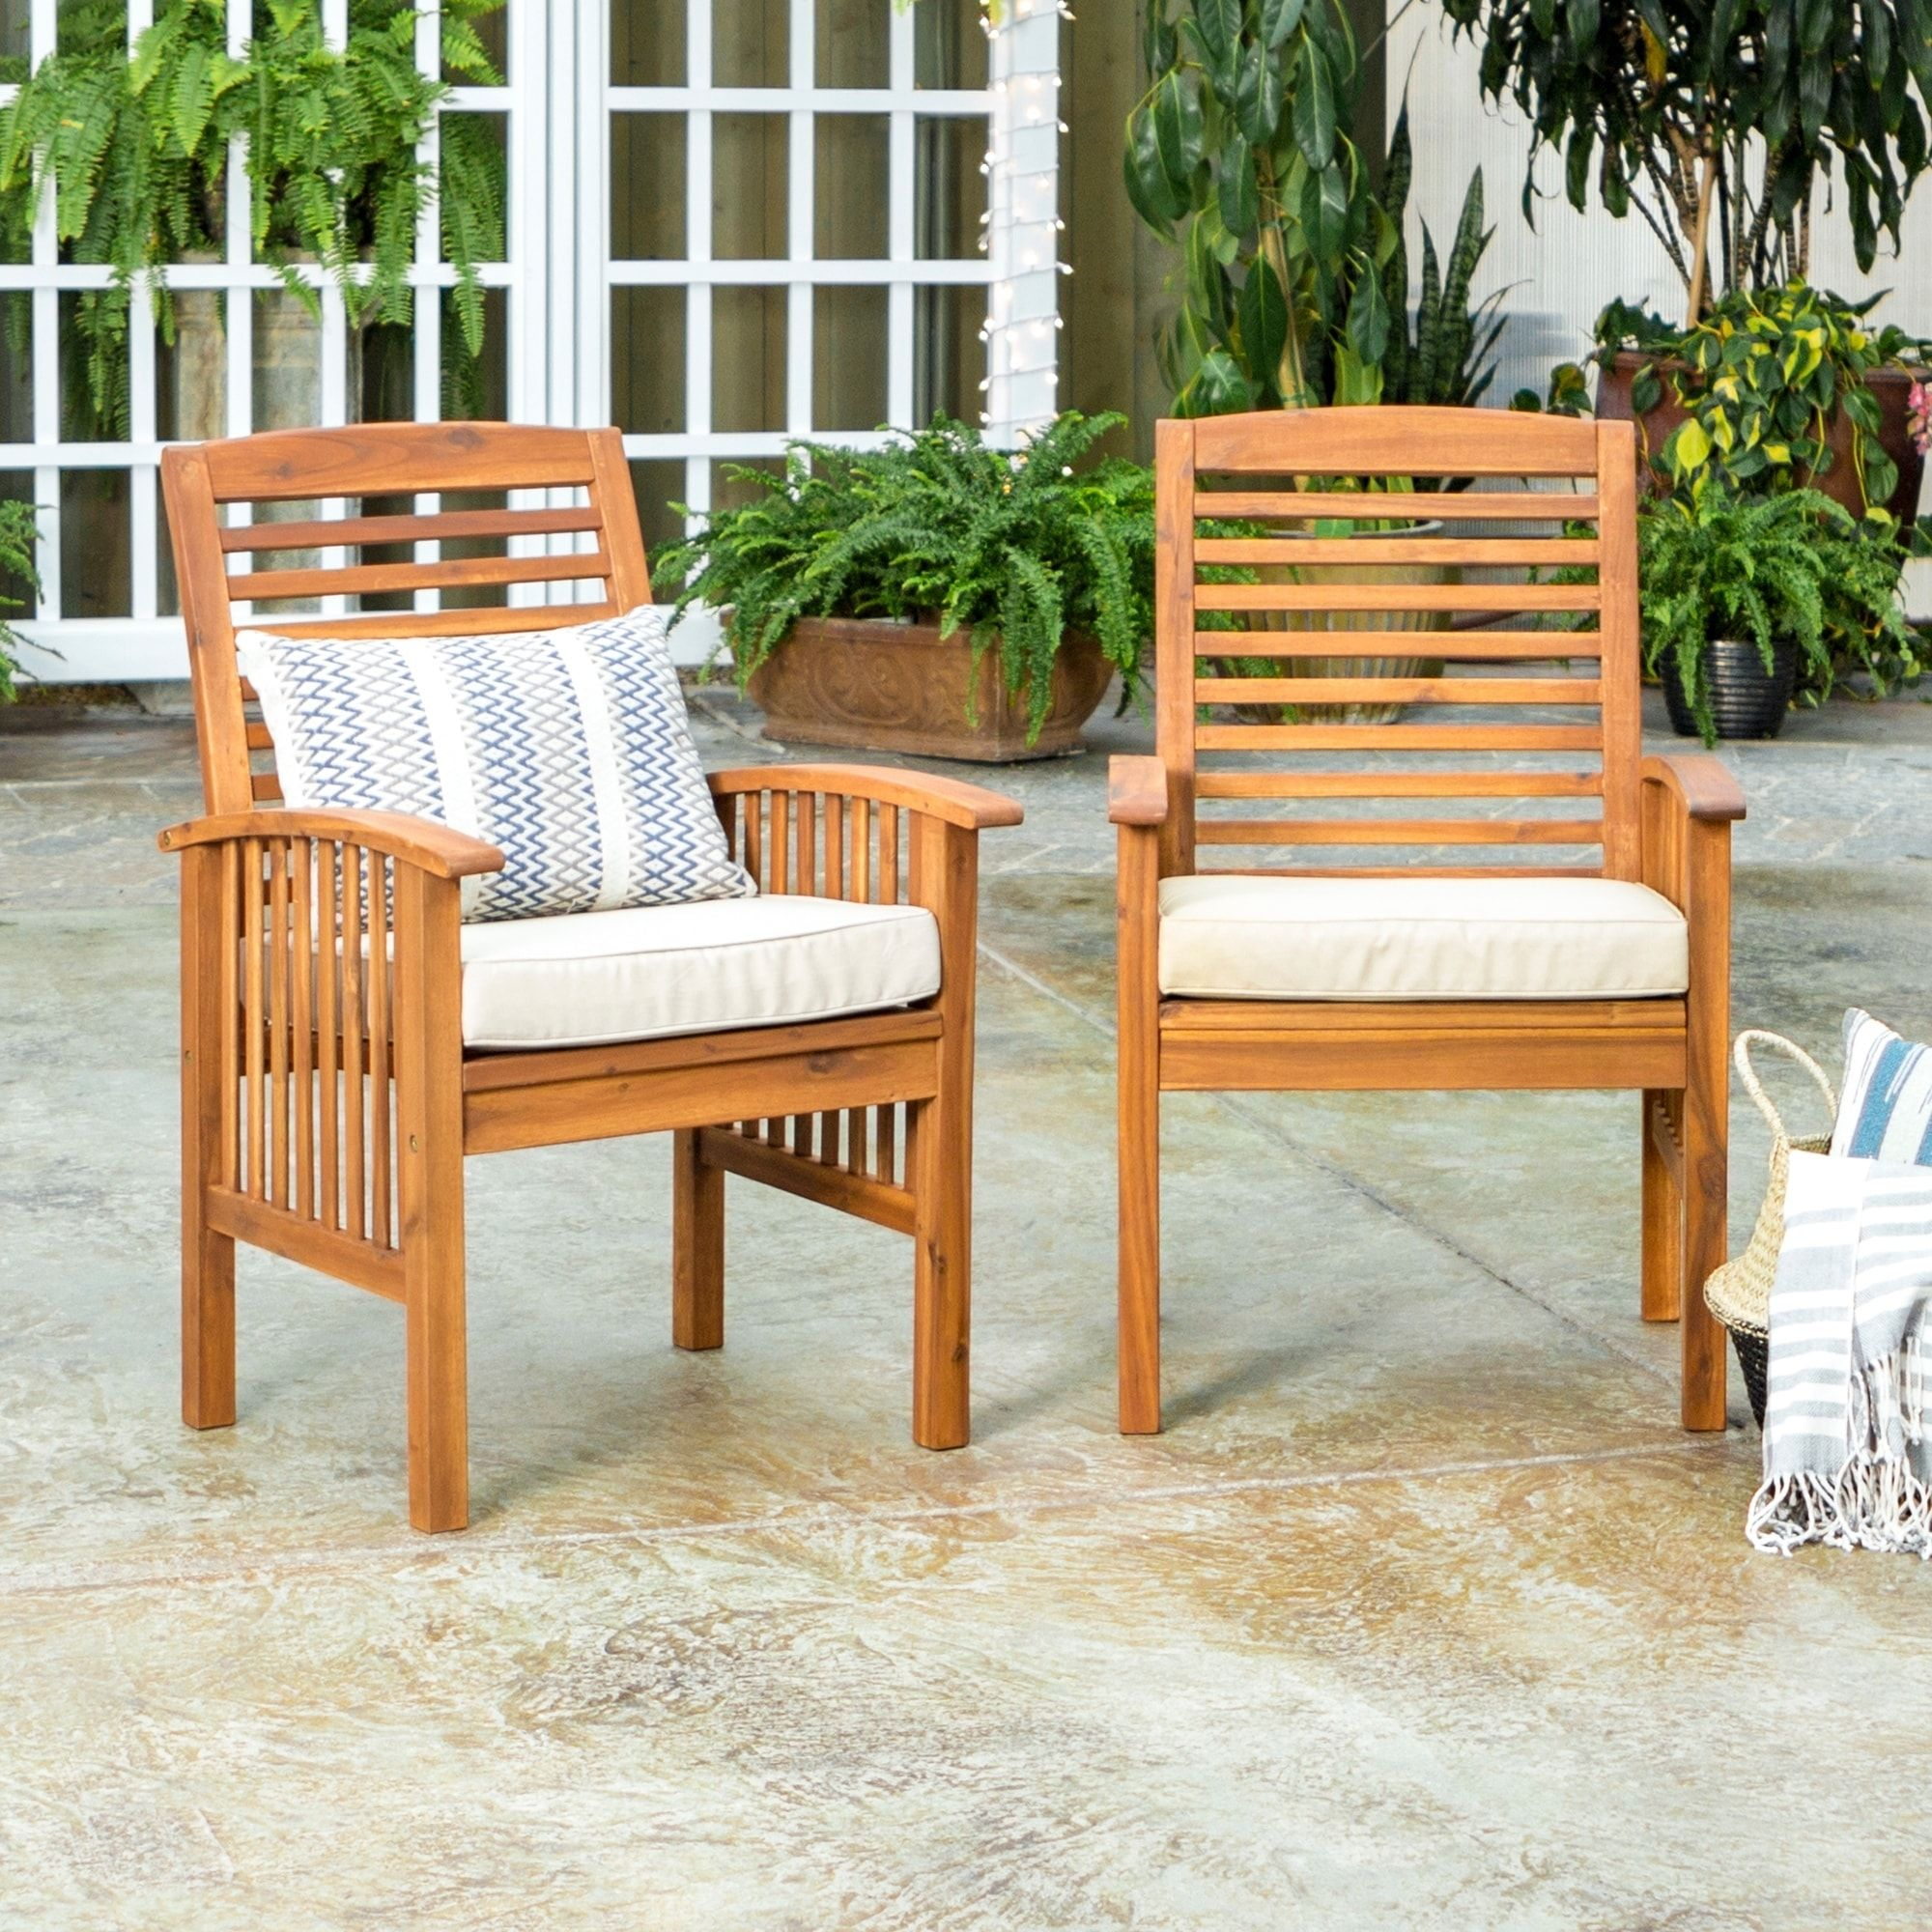 Havenside Home Surfside Acacia Wood Patio Chairs Set Of 2 Outdoor Furniture Plans Wood Patio Furniture Wood Patio Chairs